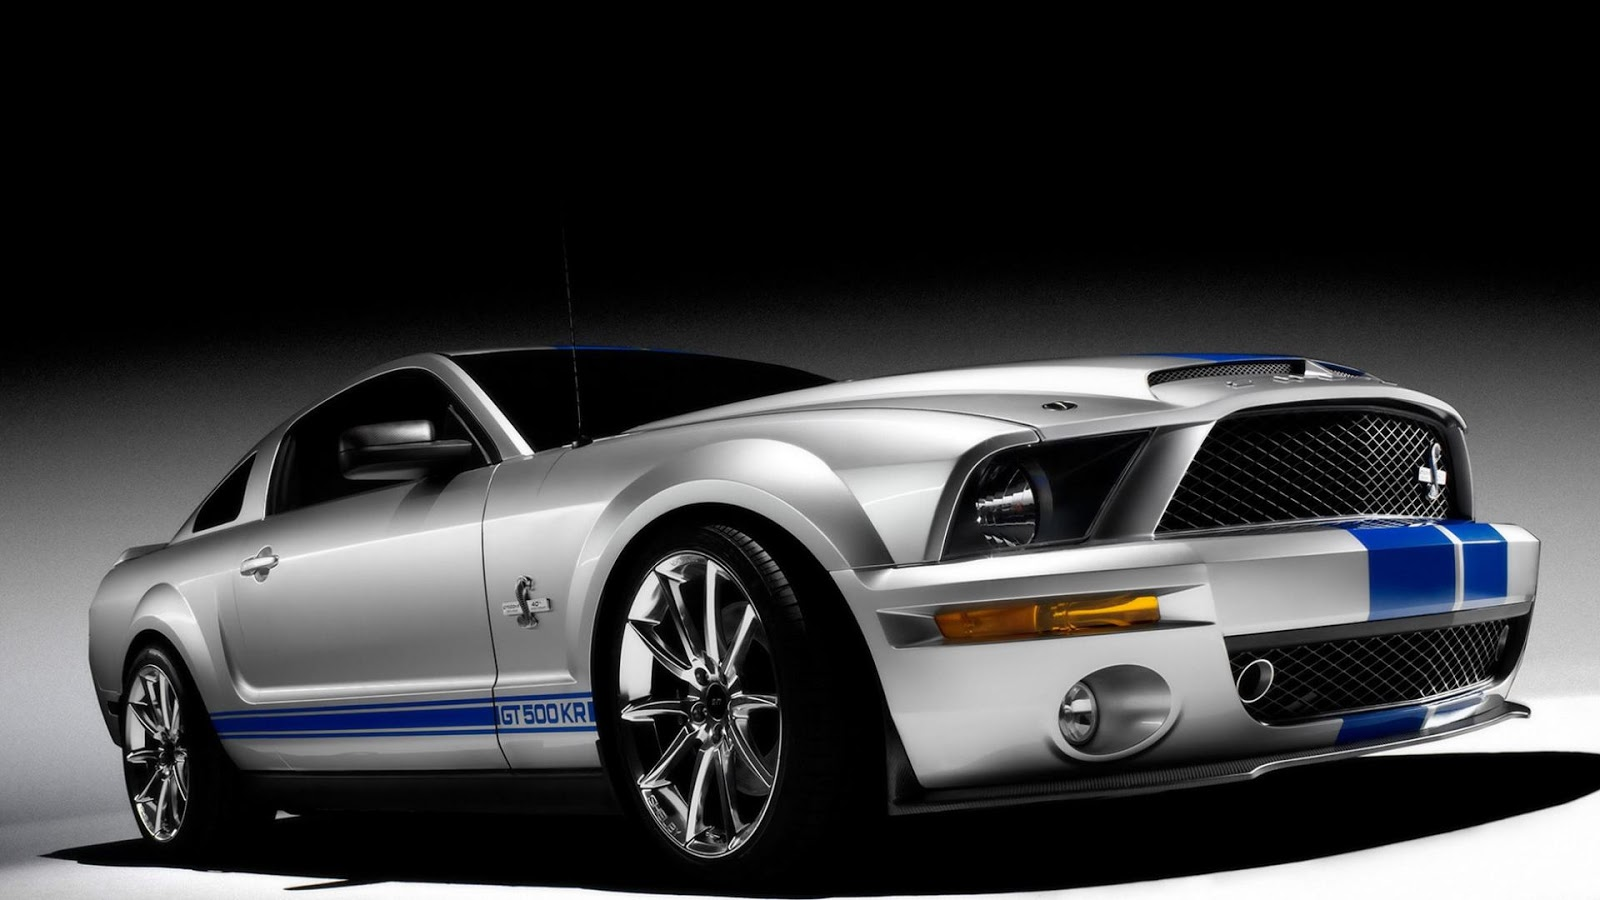 Cars Hd Wallpaper Car Wallpapers Hd 21 Wallpaper